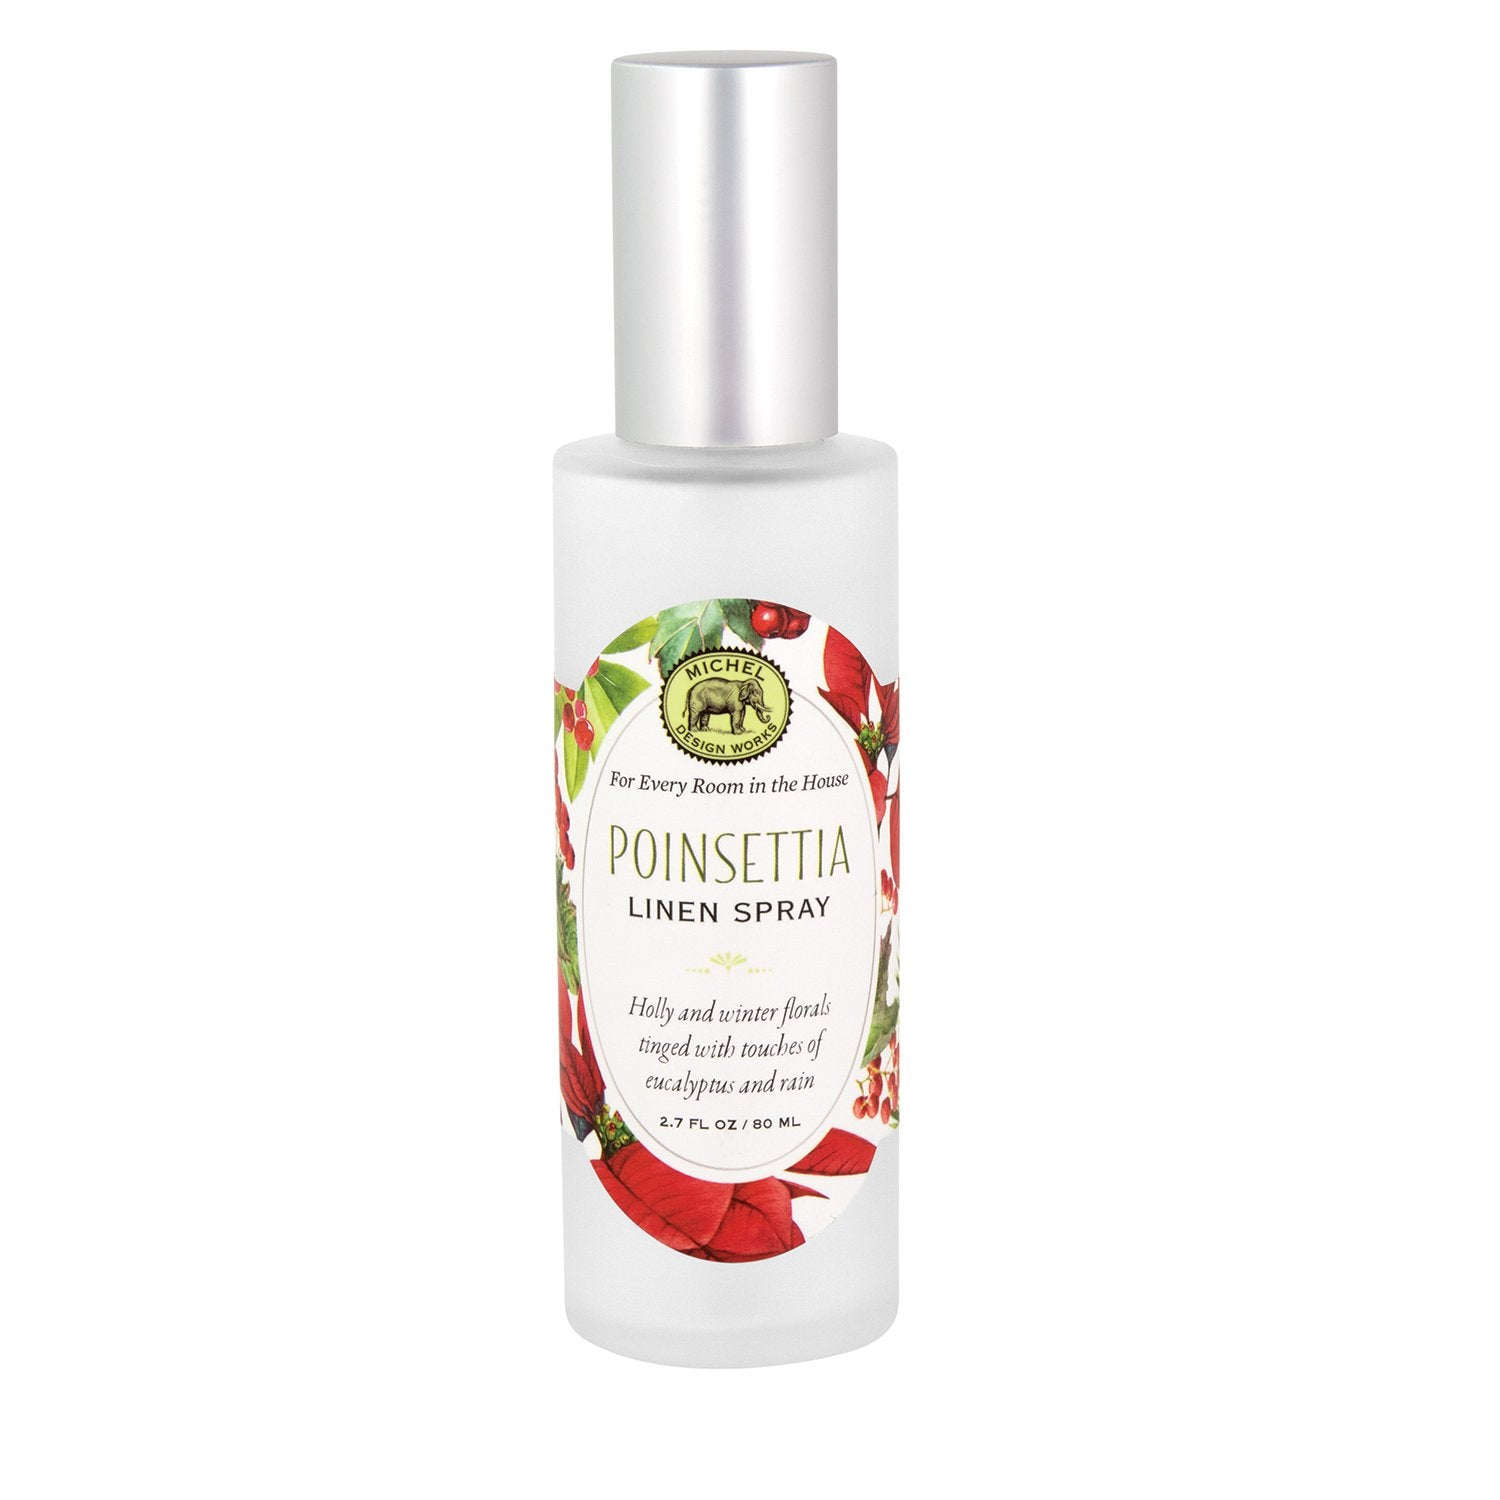 Poinsettia Linen Spray